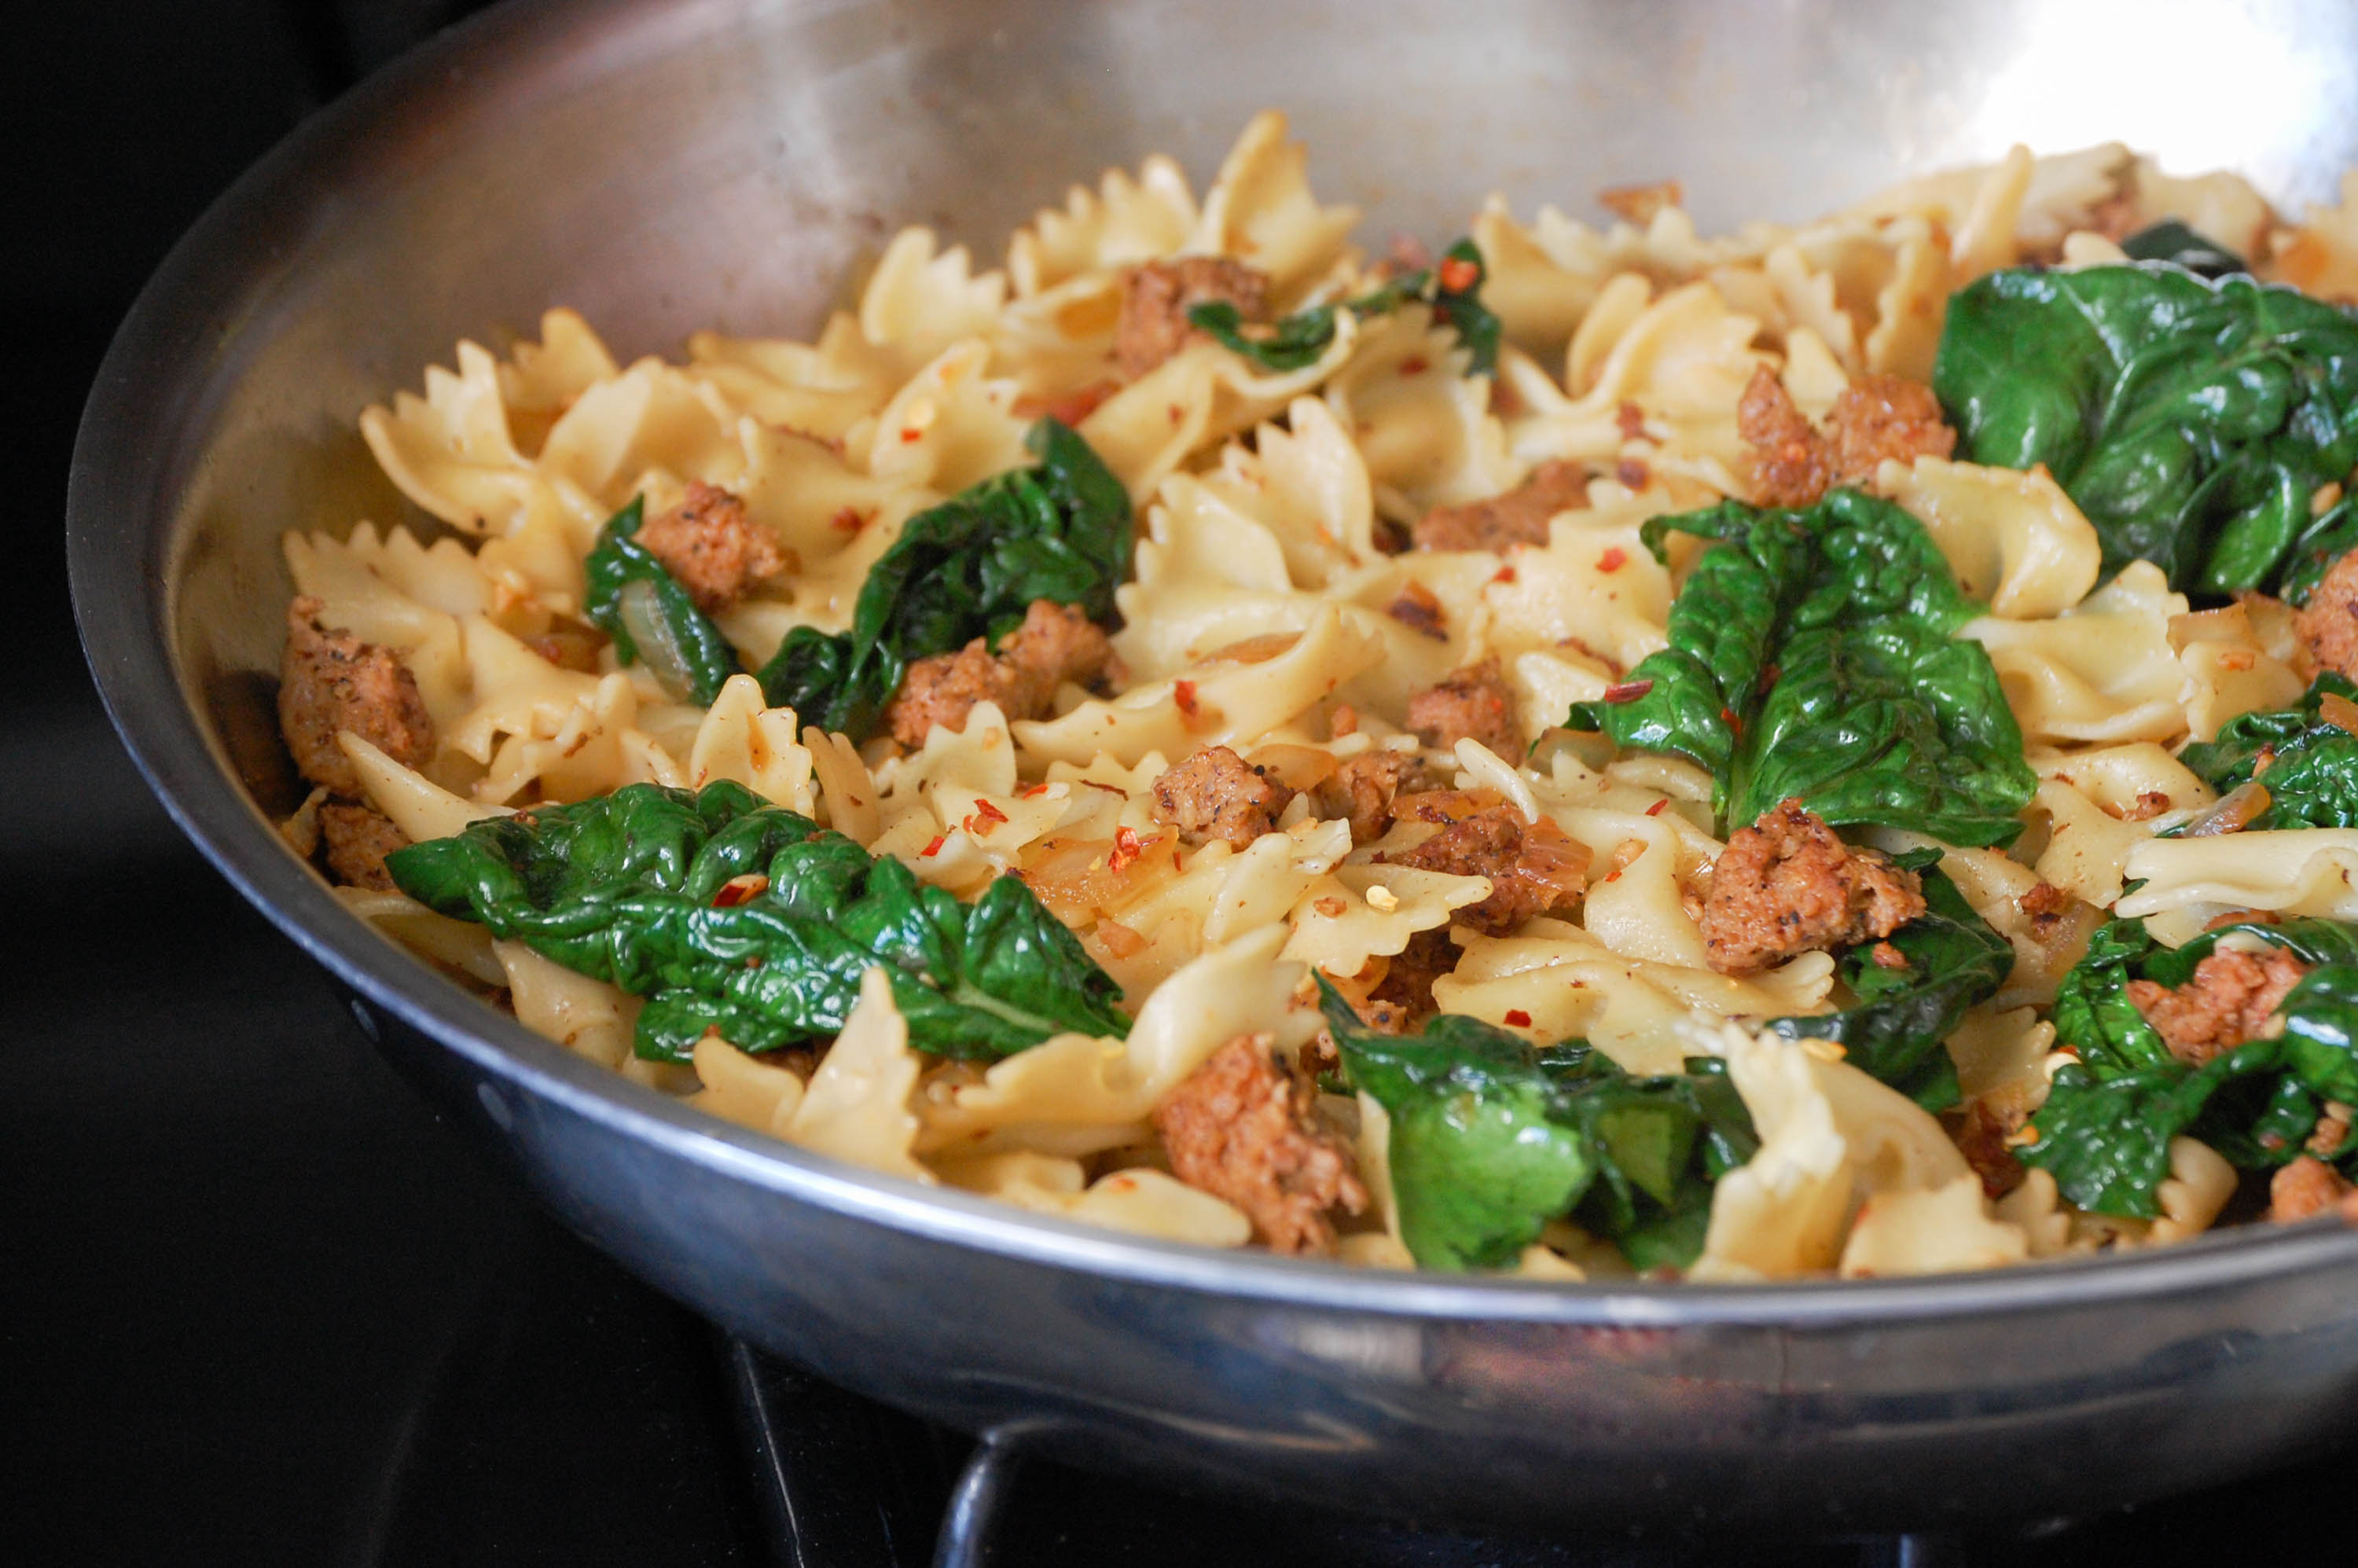 Spicy Pasta with Sausage and Spinach via The District Table